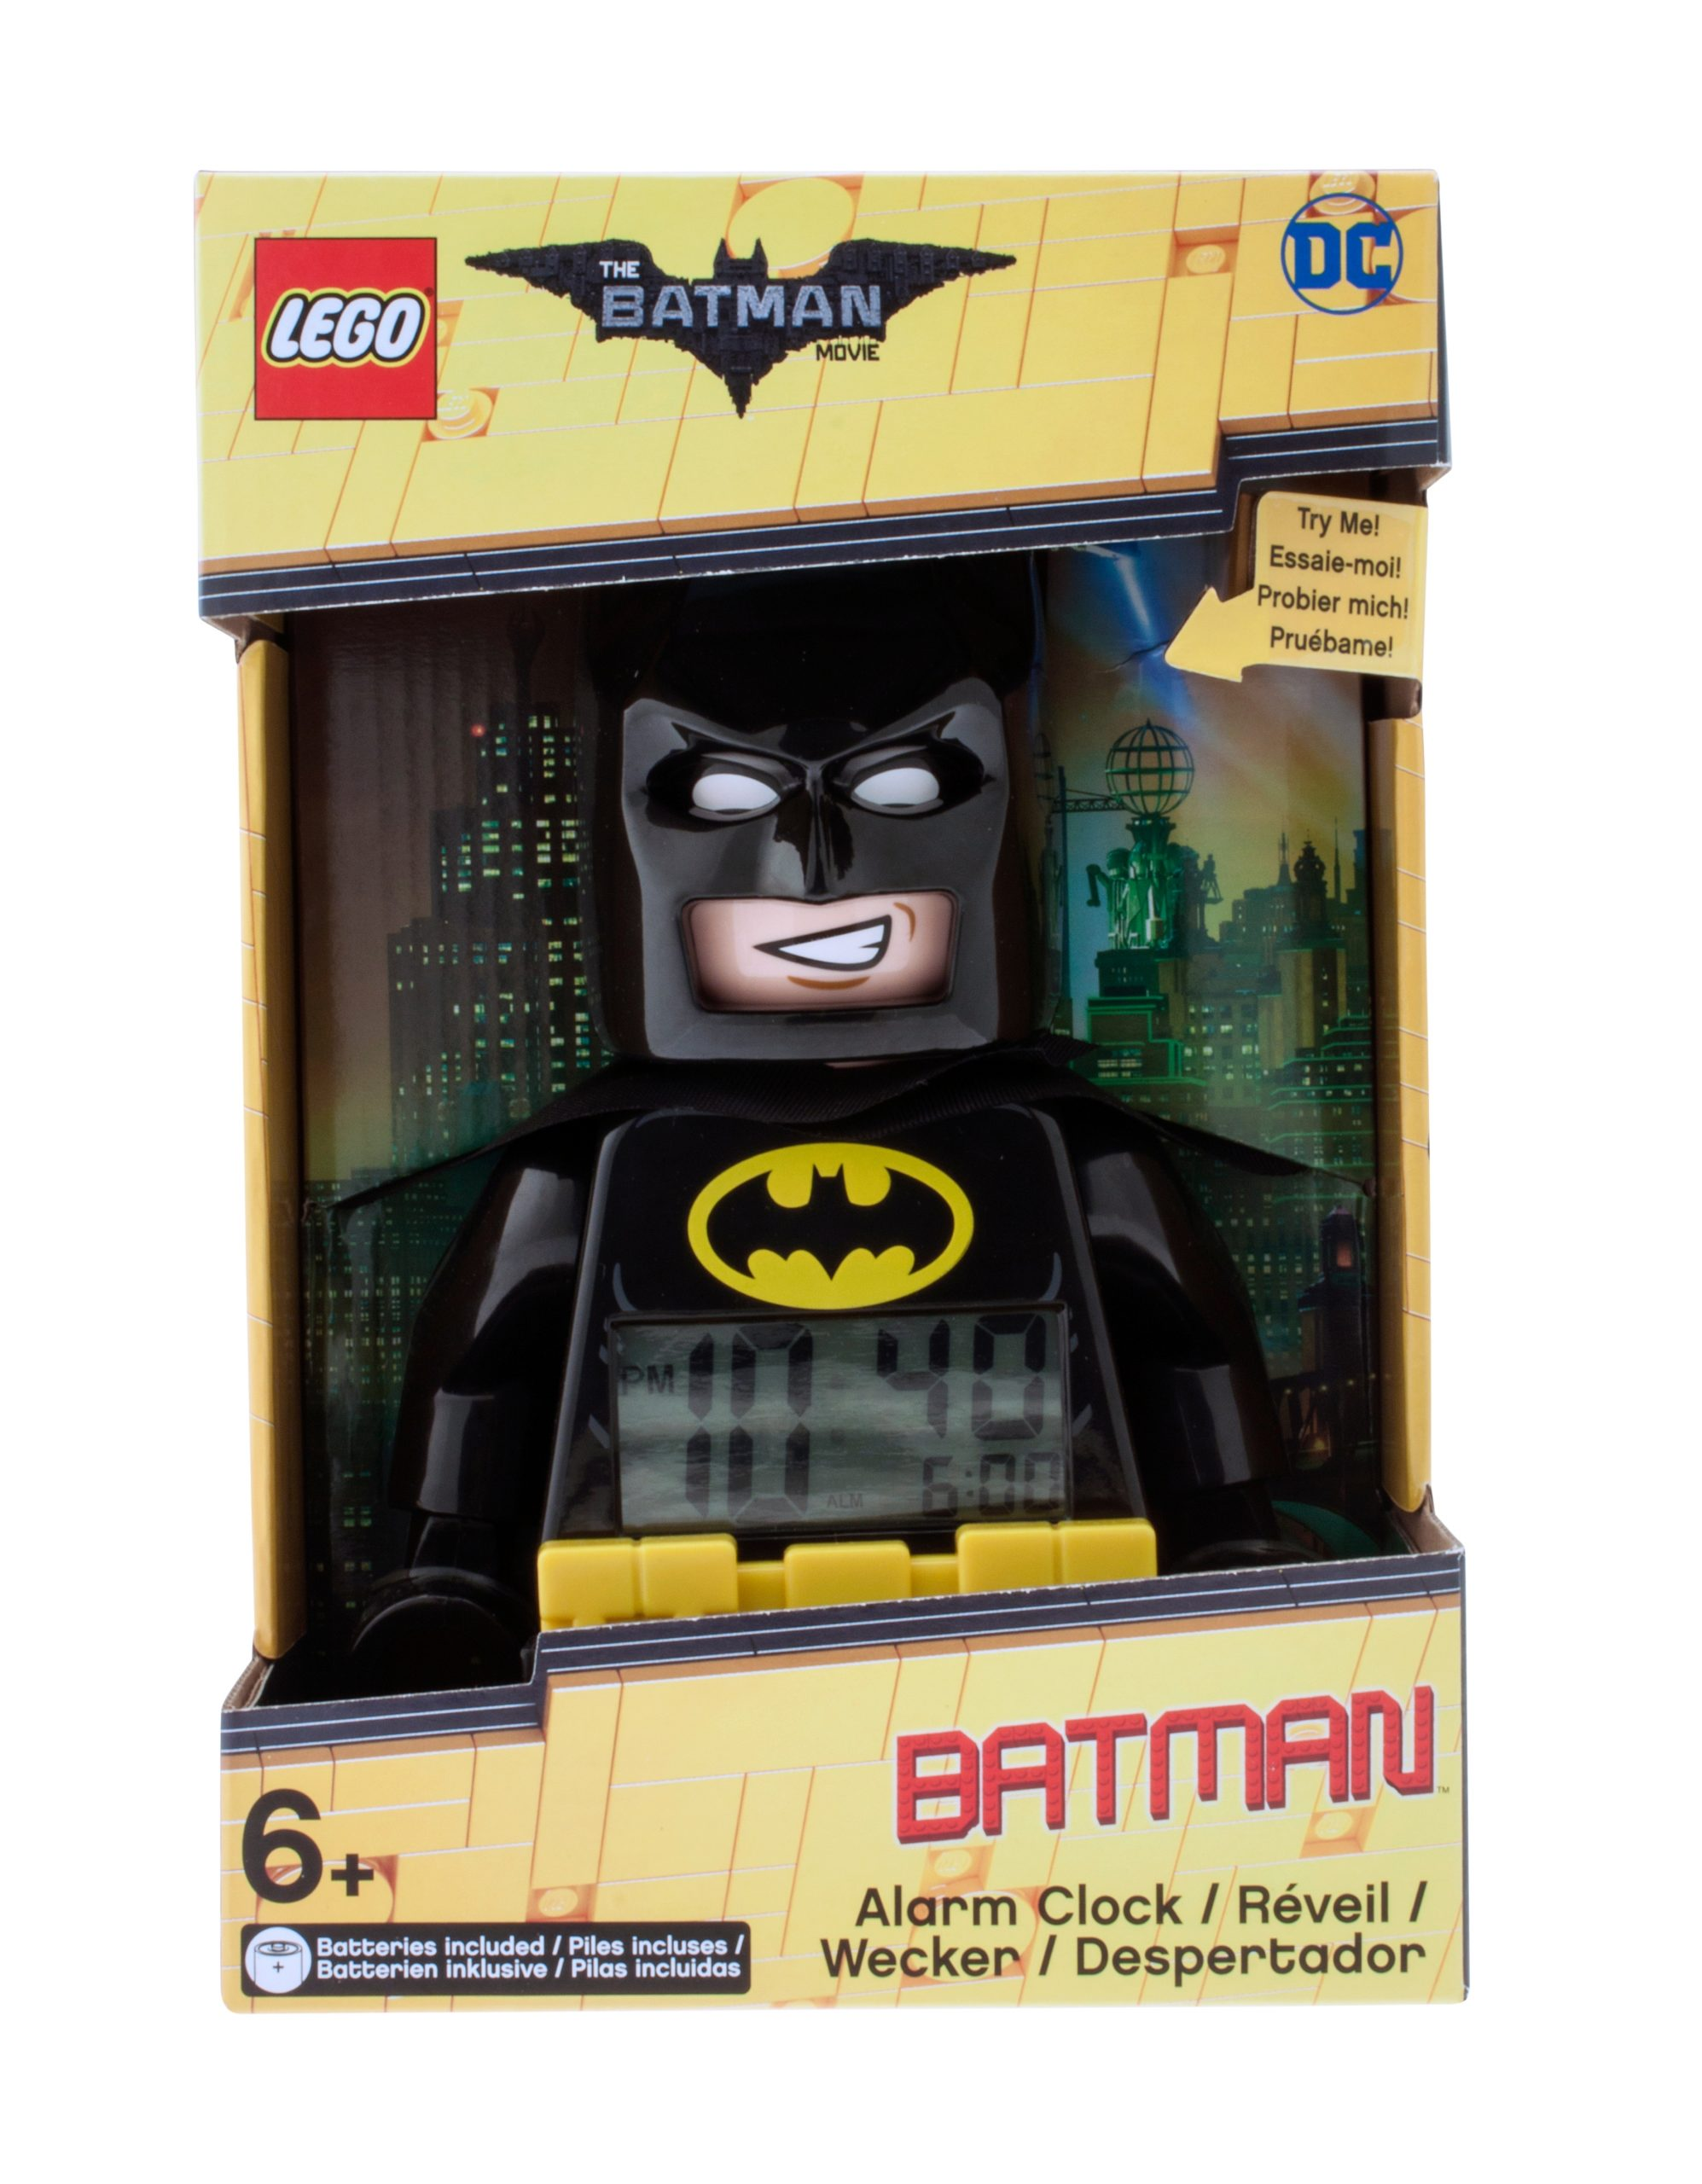 lego 5005222 batman movie batman minifigure alarm clock scaled